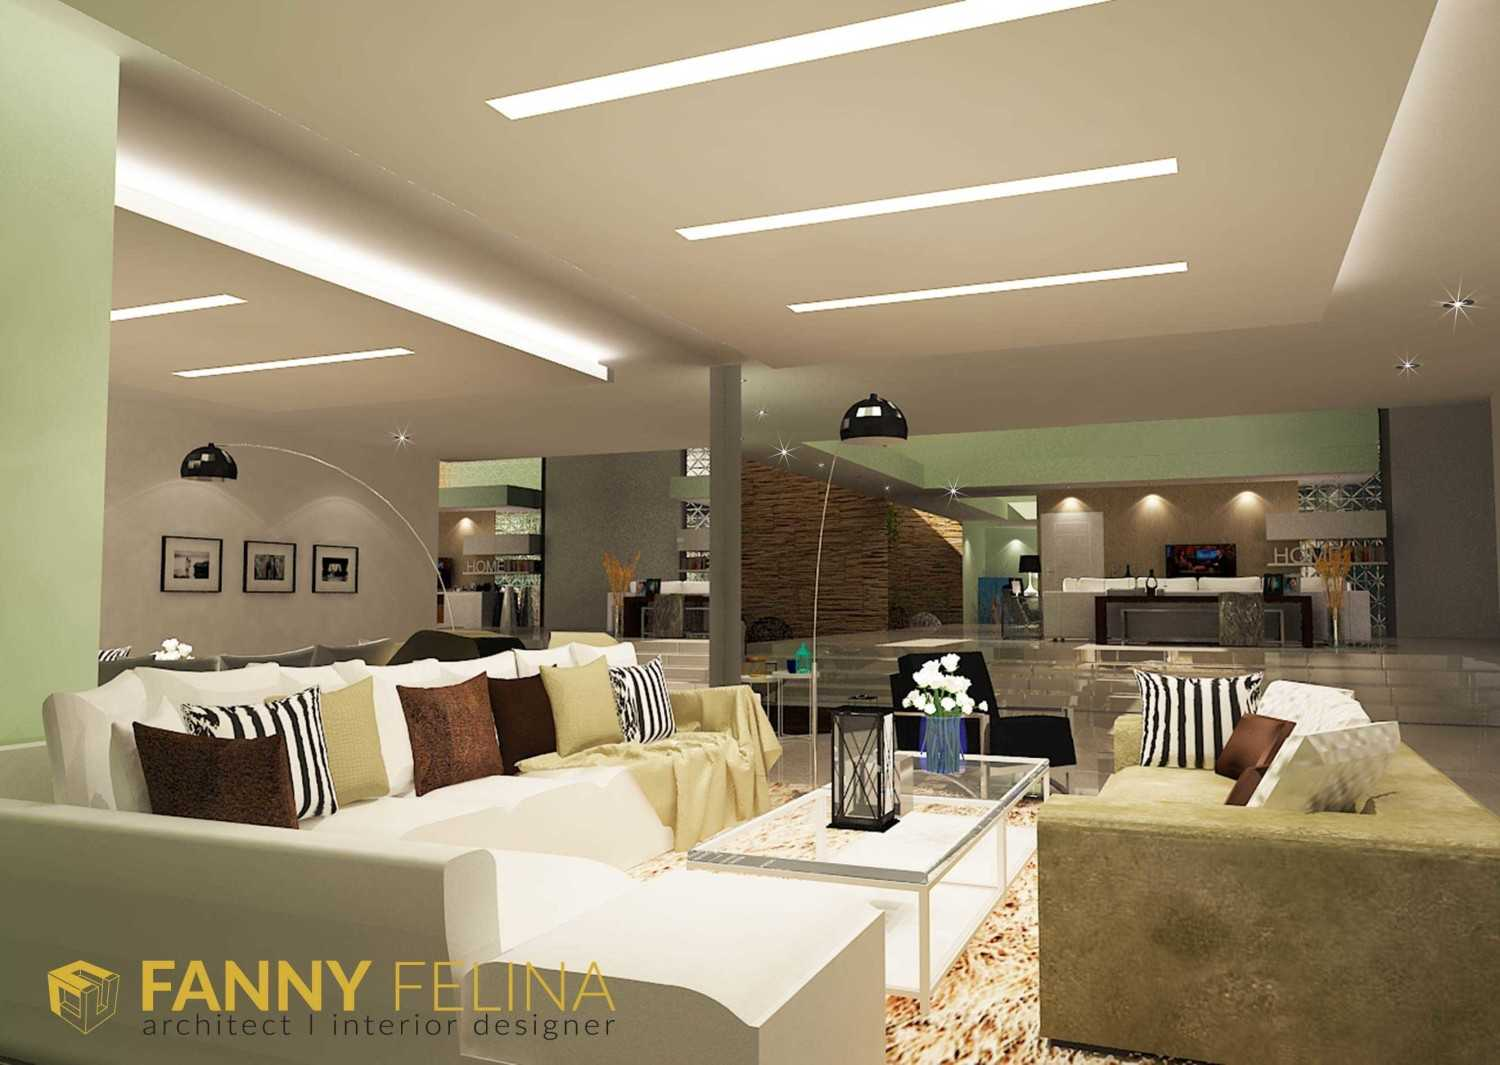 Fanny Felina Architecture & Interior Design Hercules House Surabaya, Surabaya City, East Java, Indonesia Surabaya, Surabaya City, East Java, Indonesia 04 Modern 34577